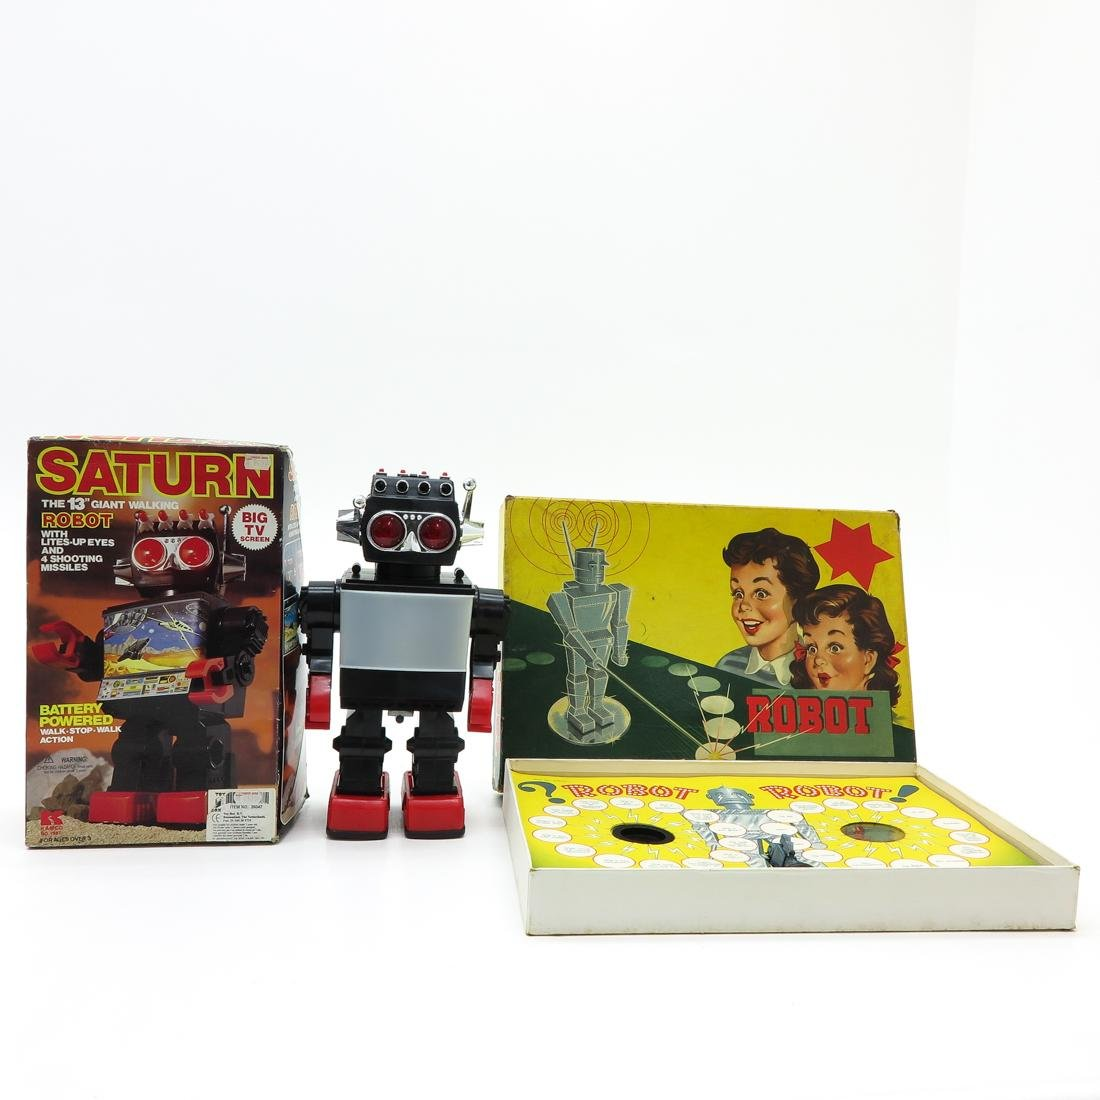 Saturn Giant Walking Robot and Robot Board Game